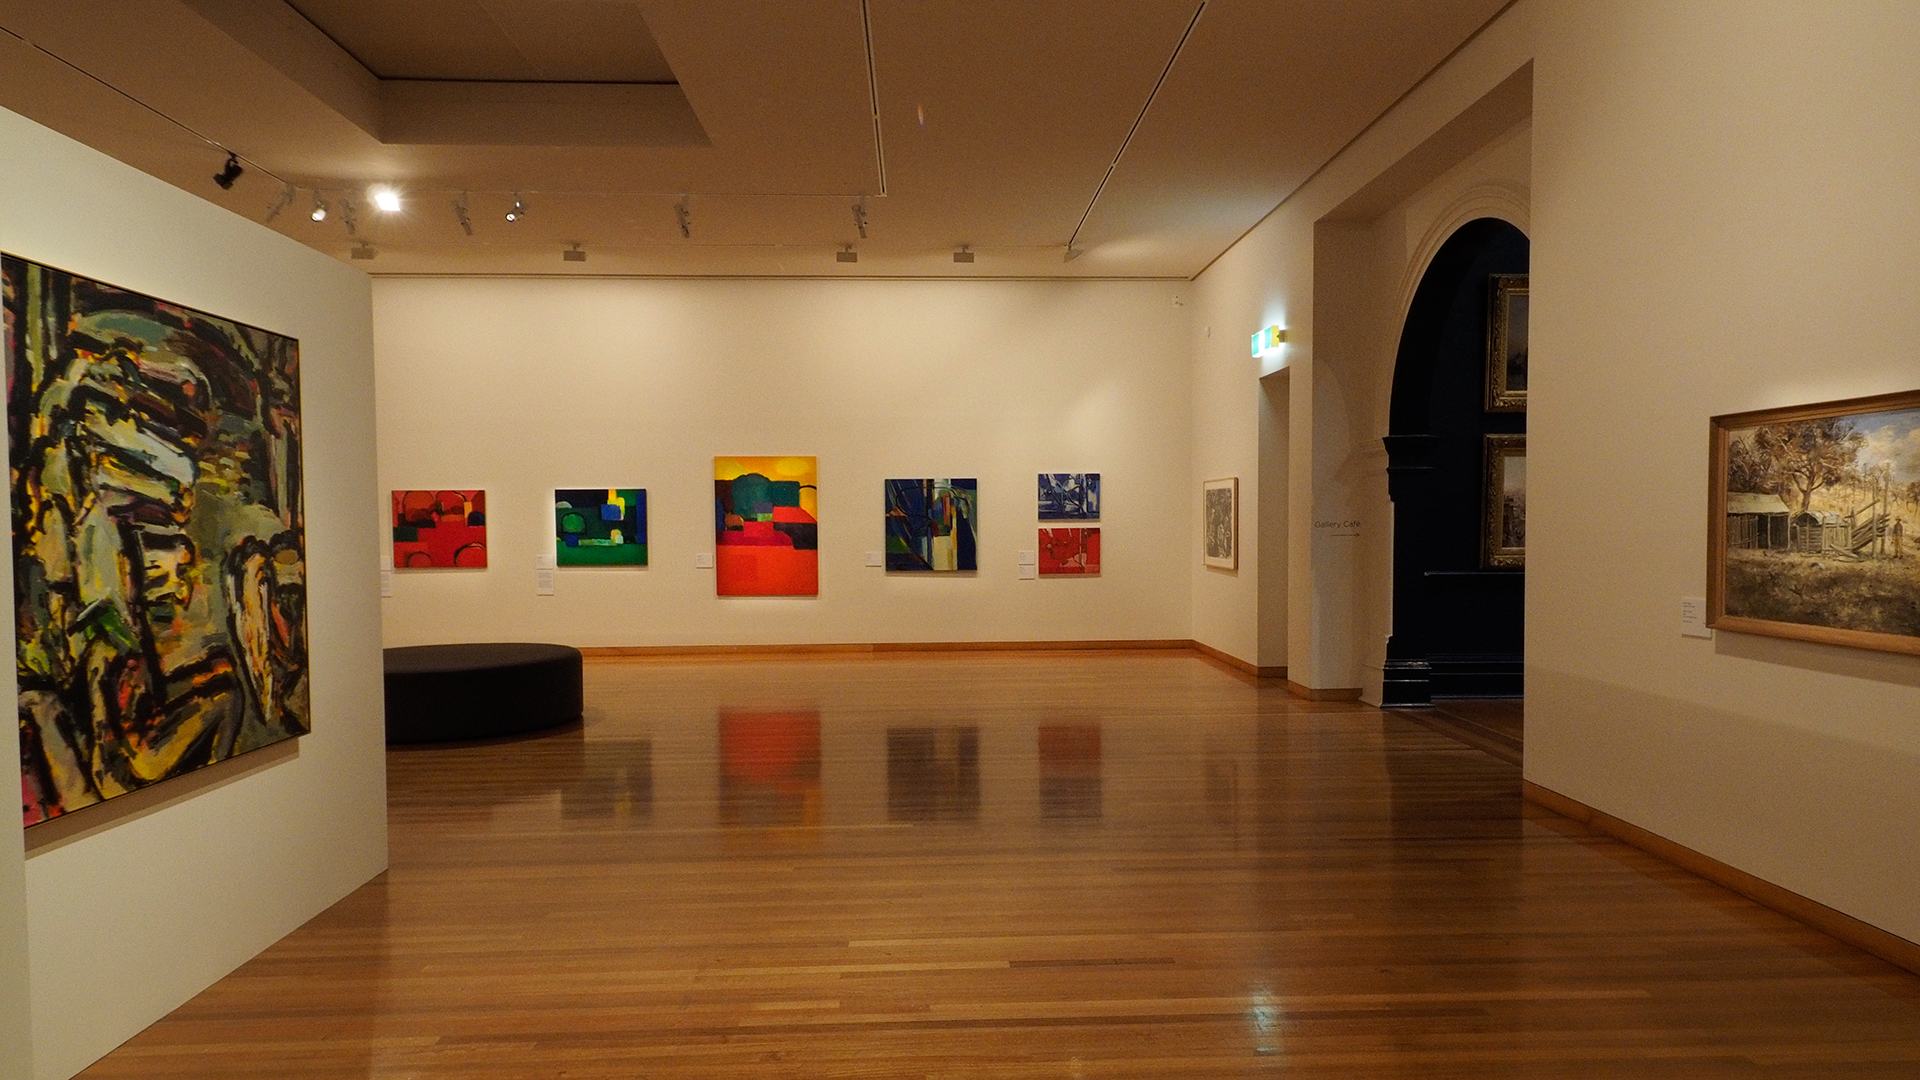 Bendigo Art Gallery welcomes all visitors